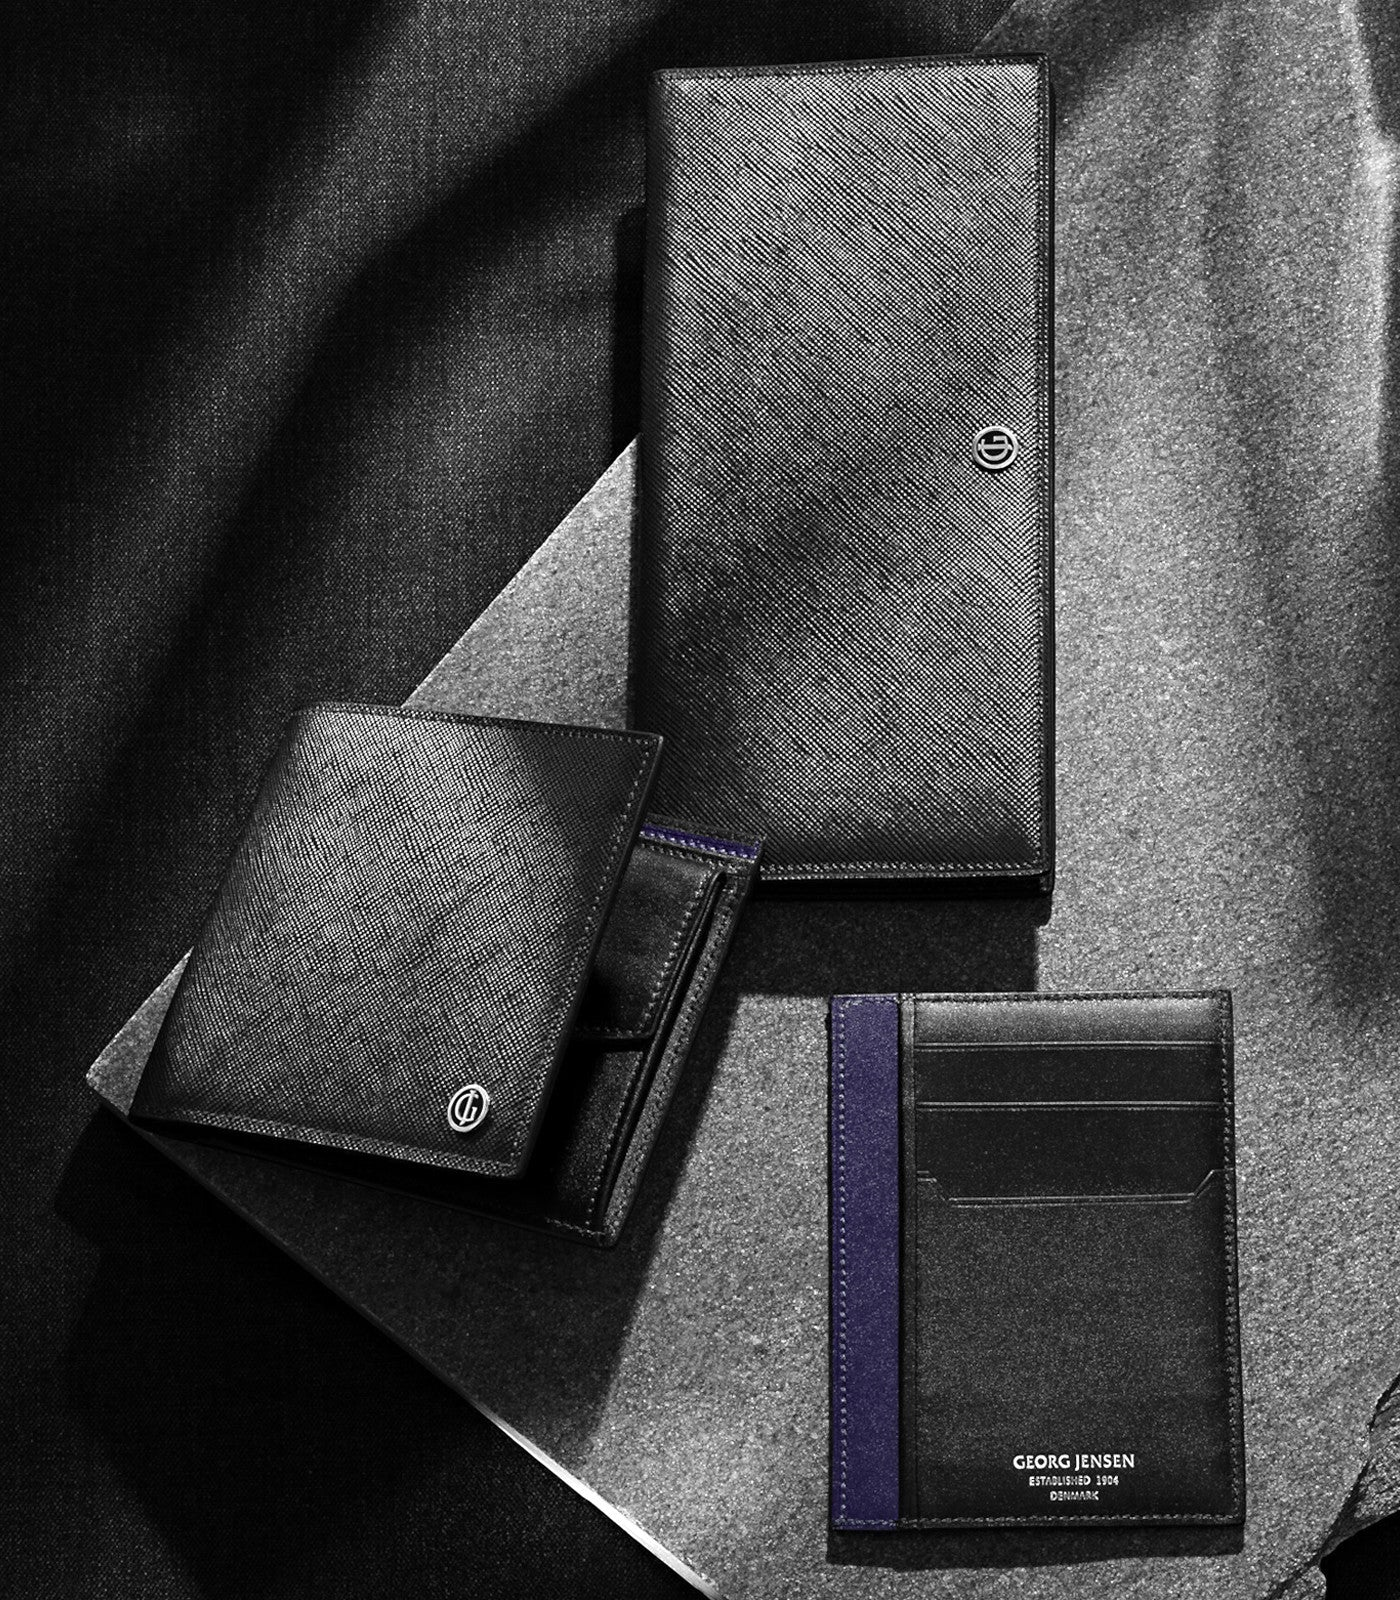 collections/Desktop_GJ_FW14_SLG_STILL-LIFE_BUSINESS-CLASSIC-COLLECTION-01_RGB_150PPI_590ae2d8-a03d-413b-a3ee-cf9f2c561c21.jpg